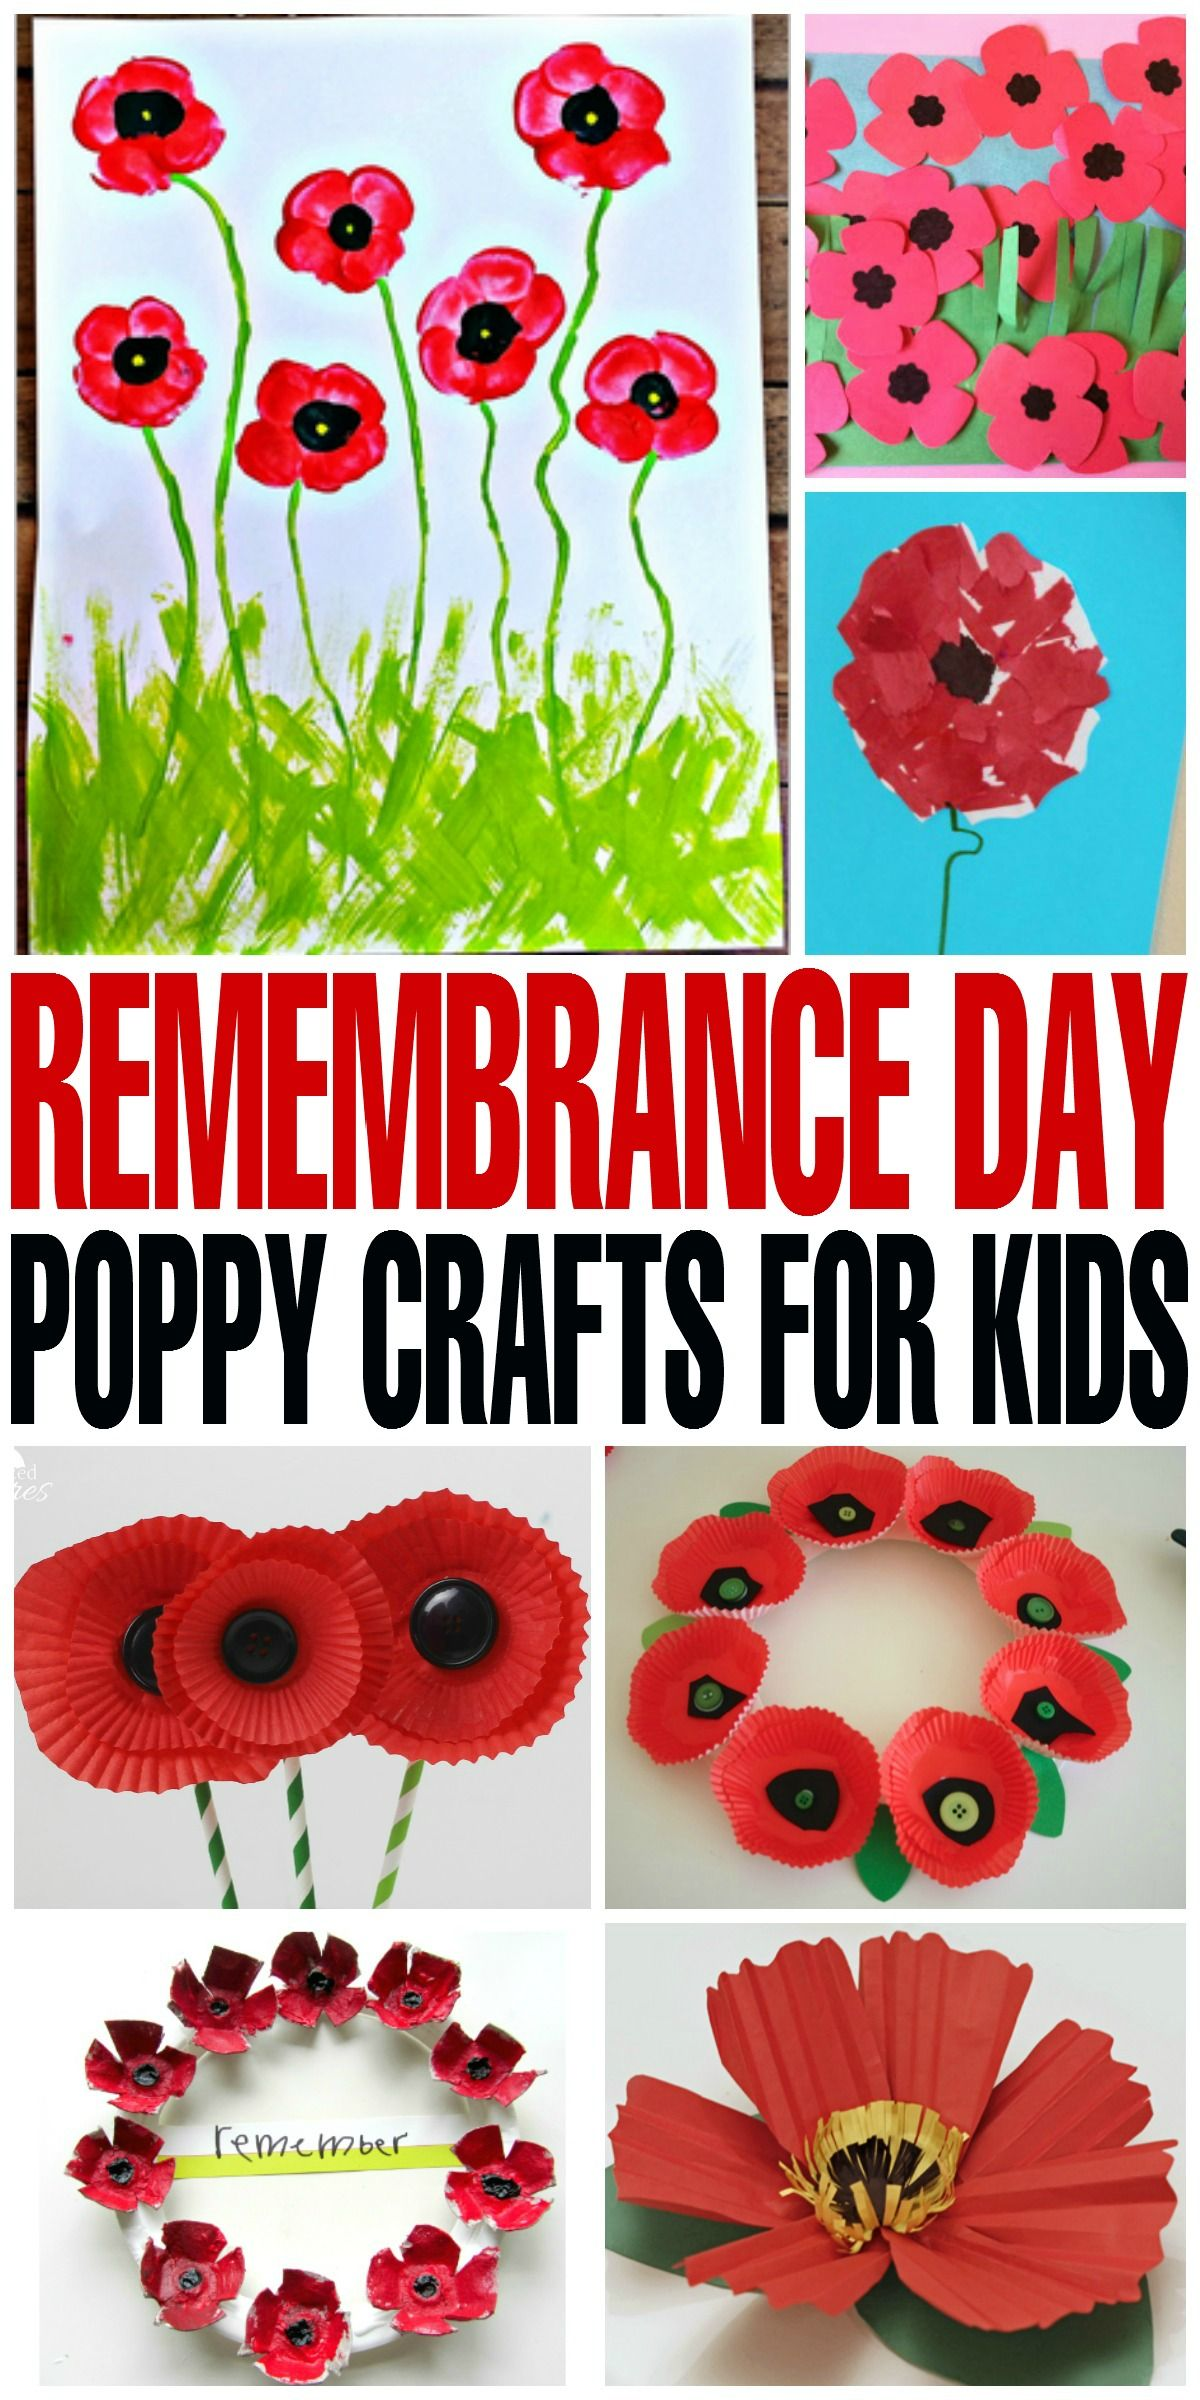 Remembrance Day Poppy Crafts For Kids